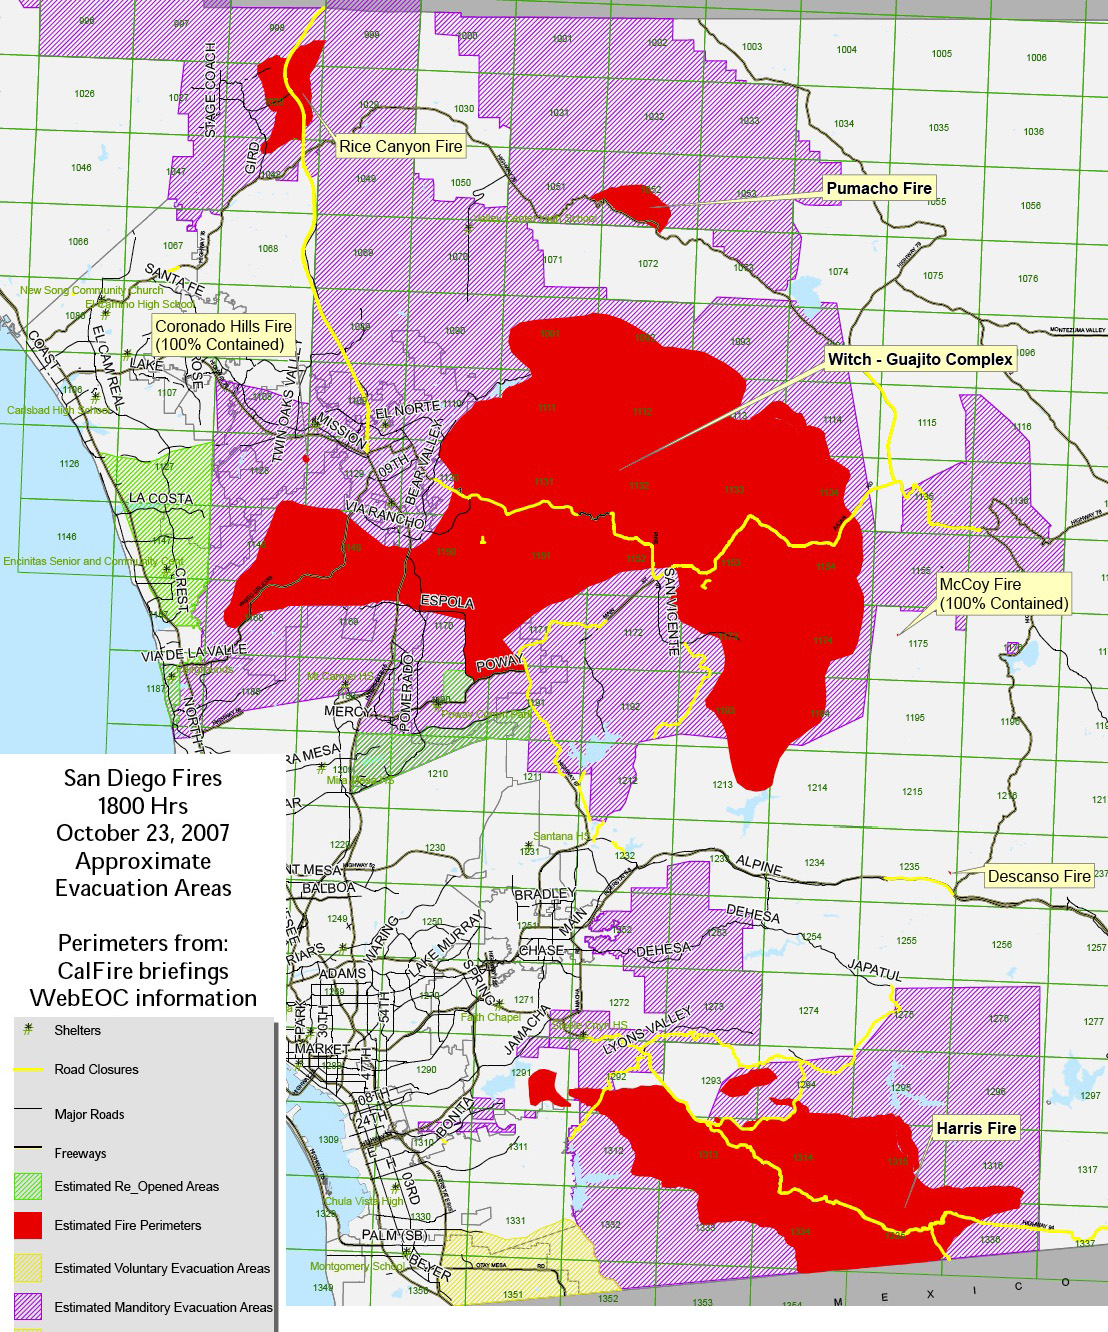 San Diego Fire Map Today.Doc Searls Weblog A Jpg Fire Map At 1800hrs